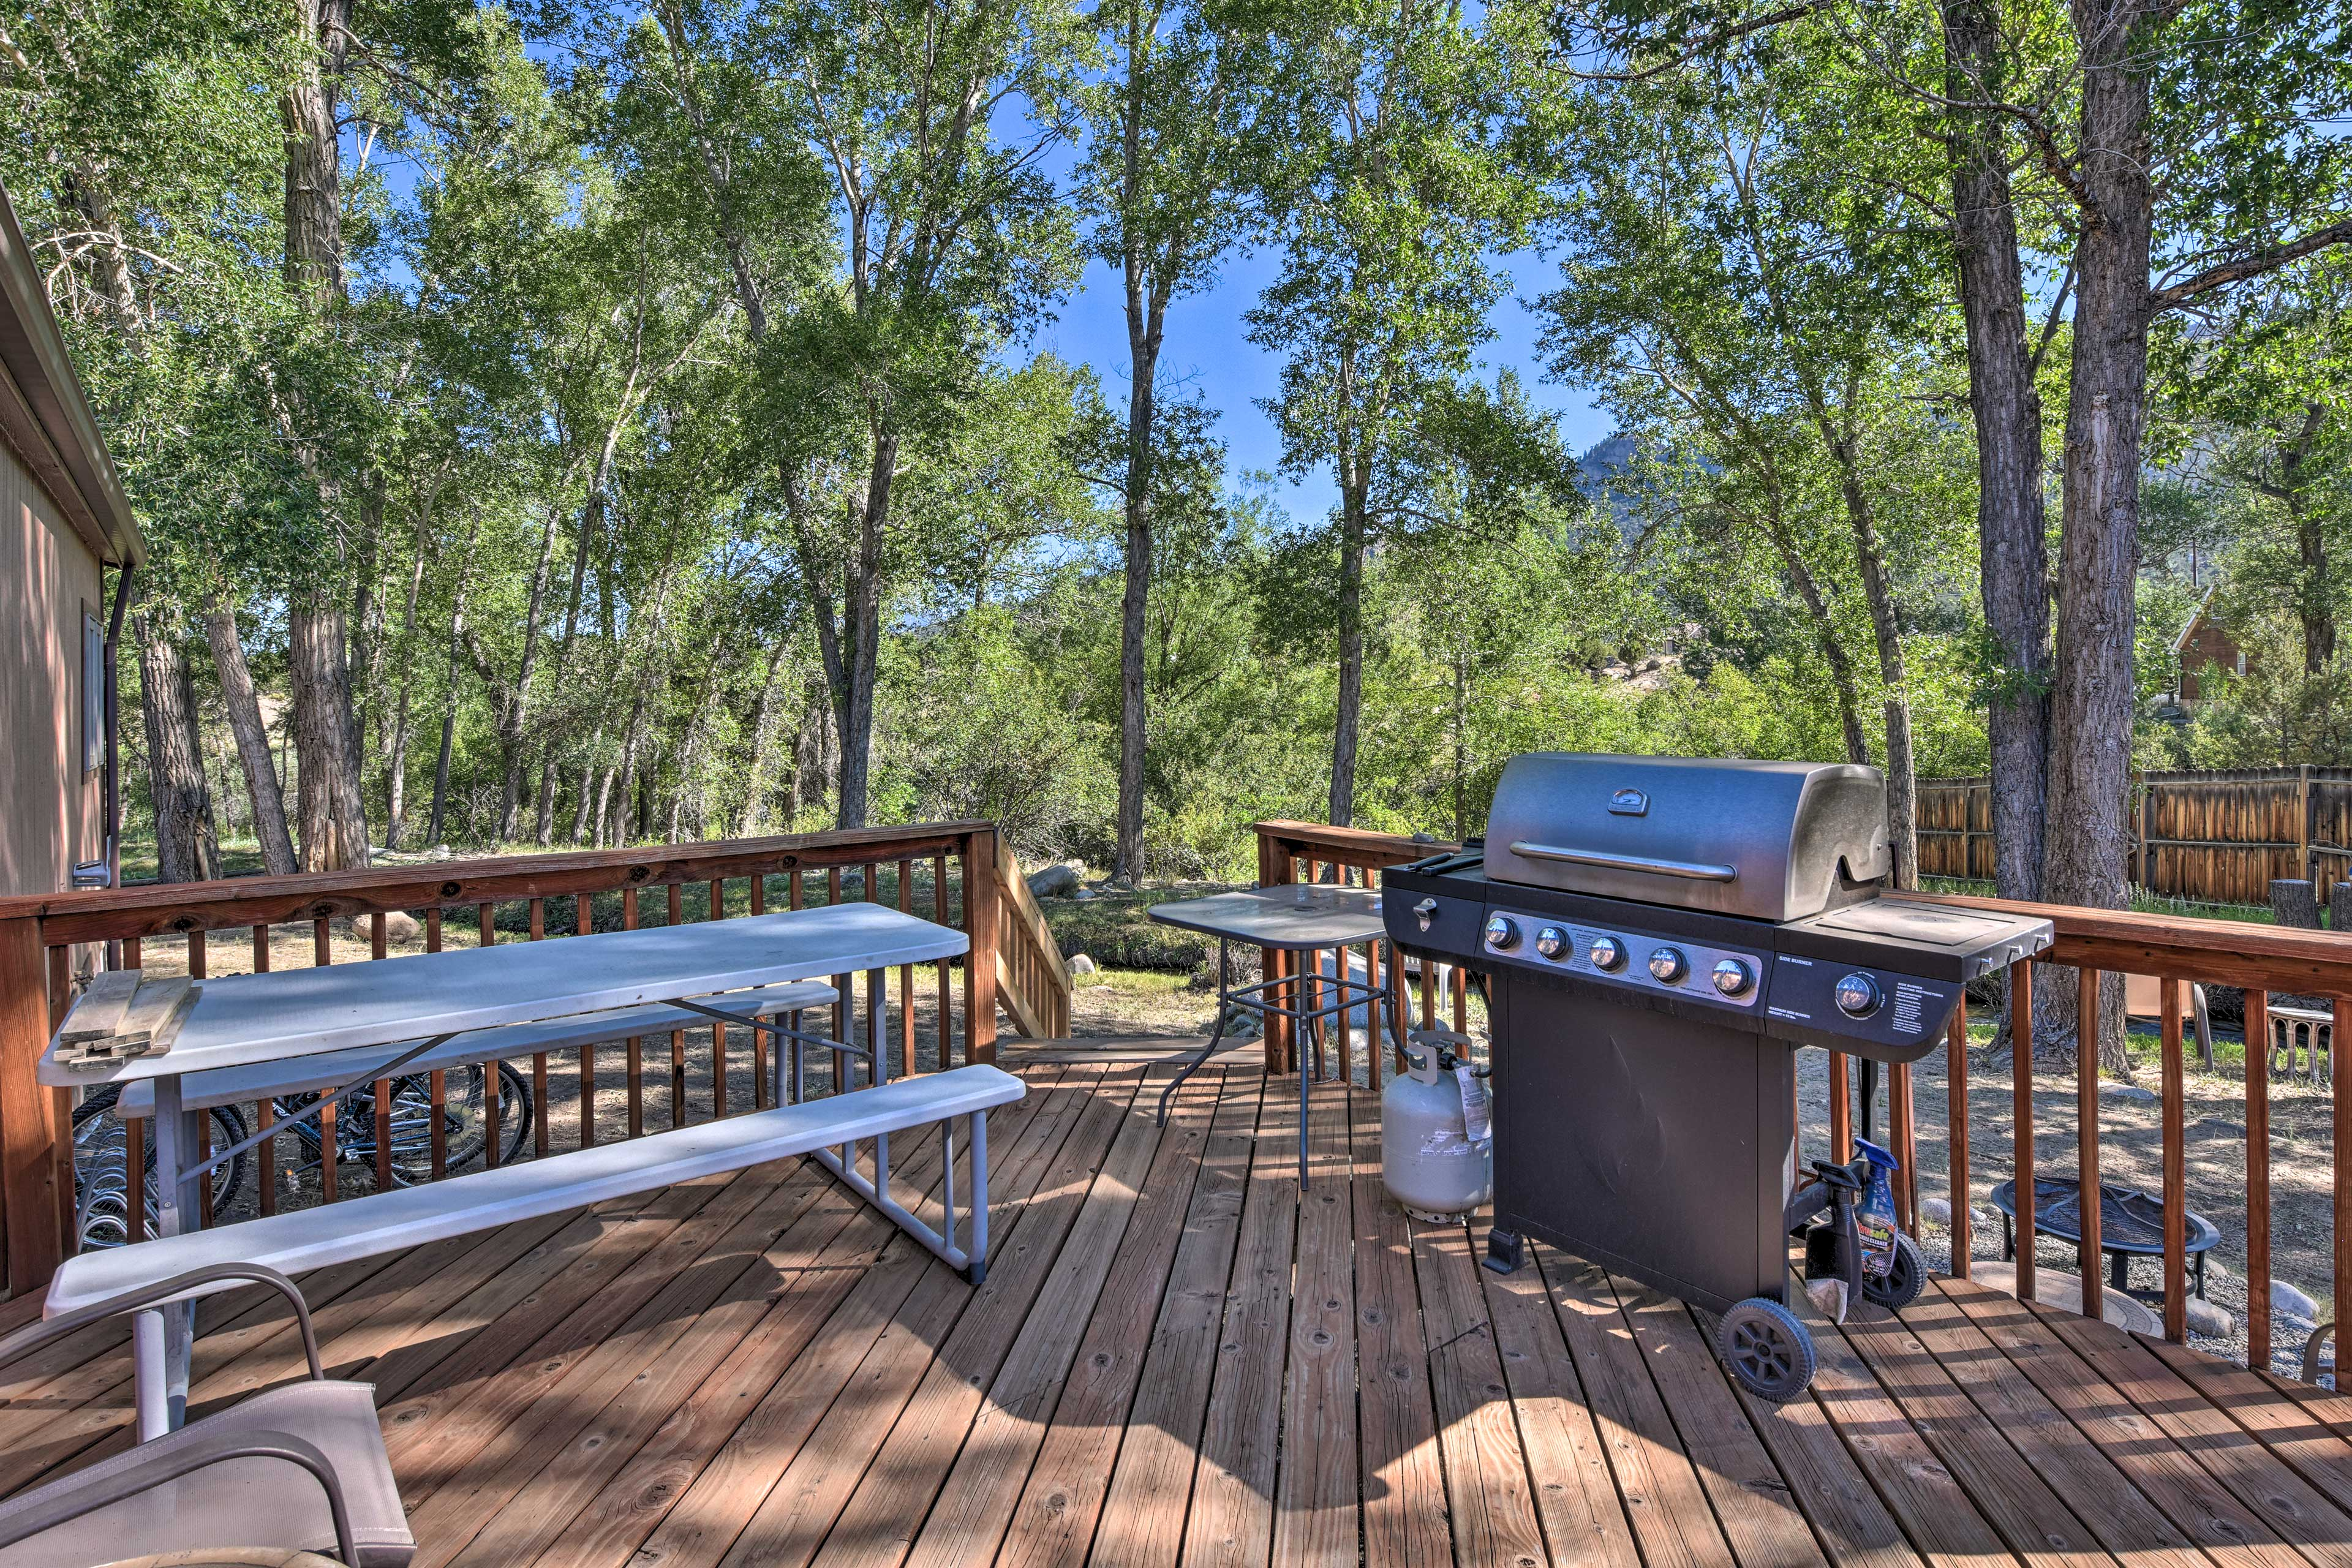 You'll love hosting family barbecues with 2 outdoor dining tables & a gas grill.